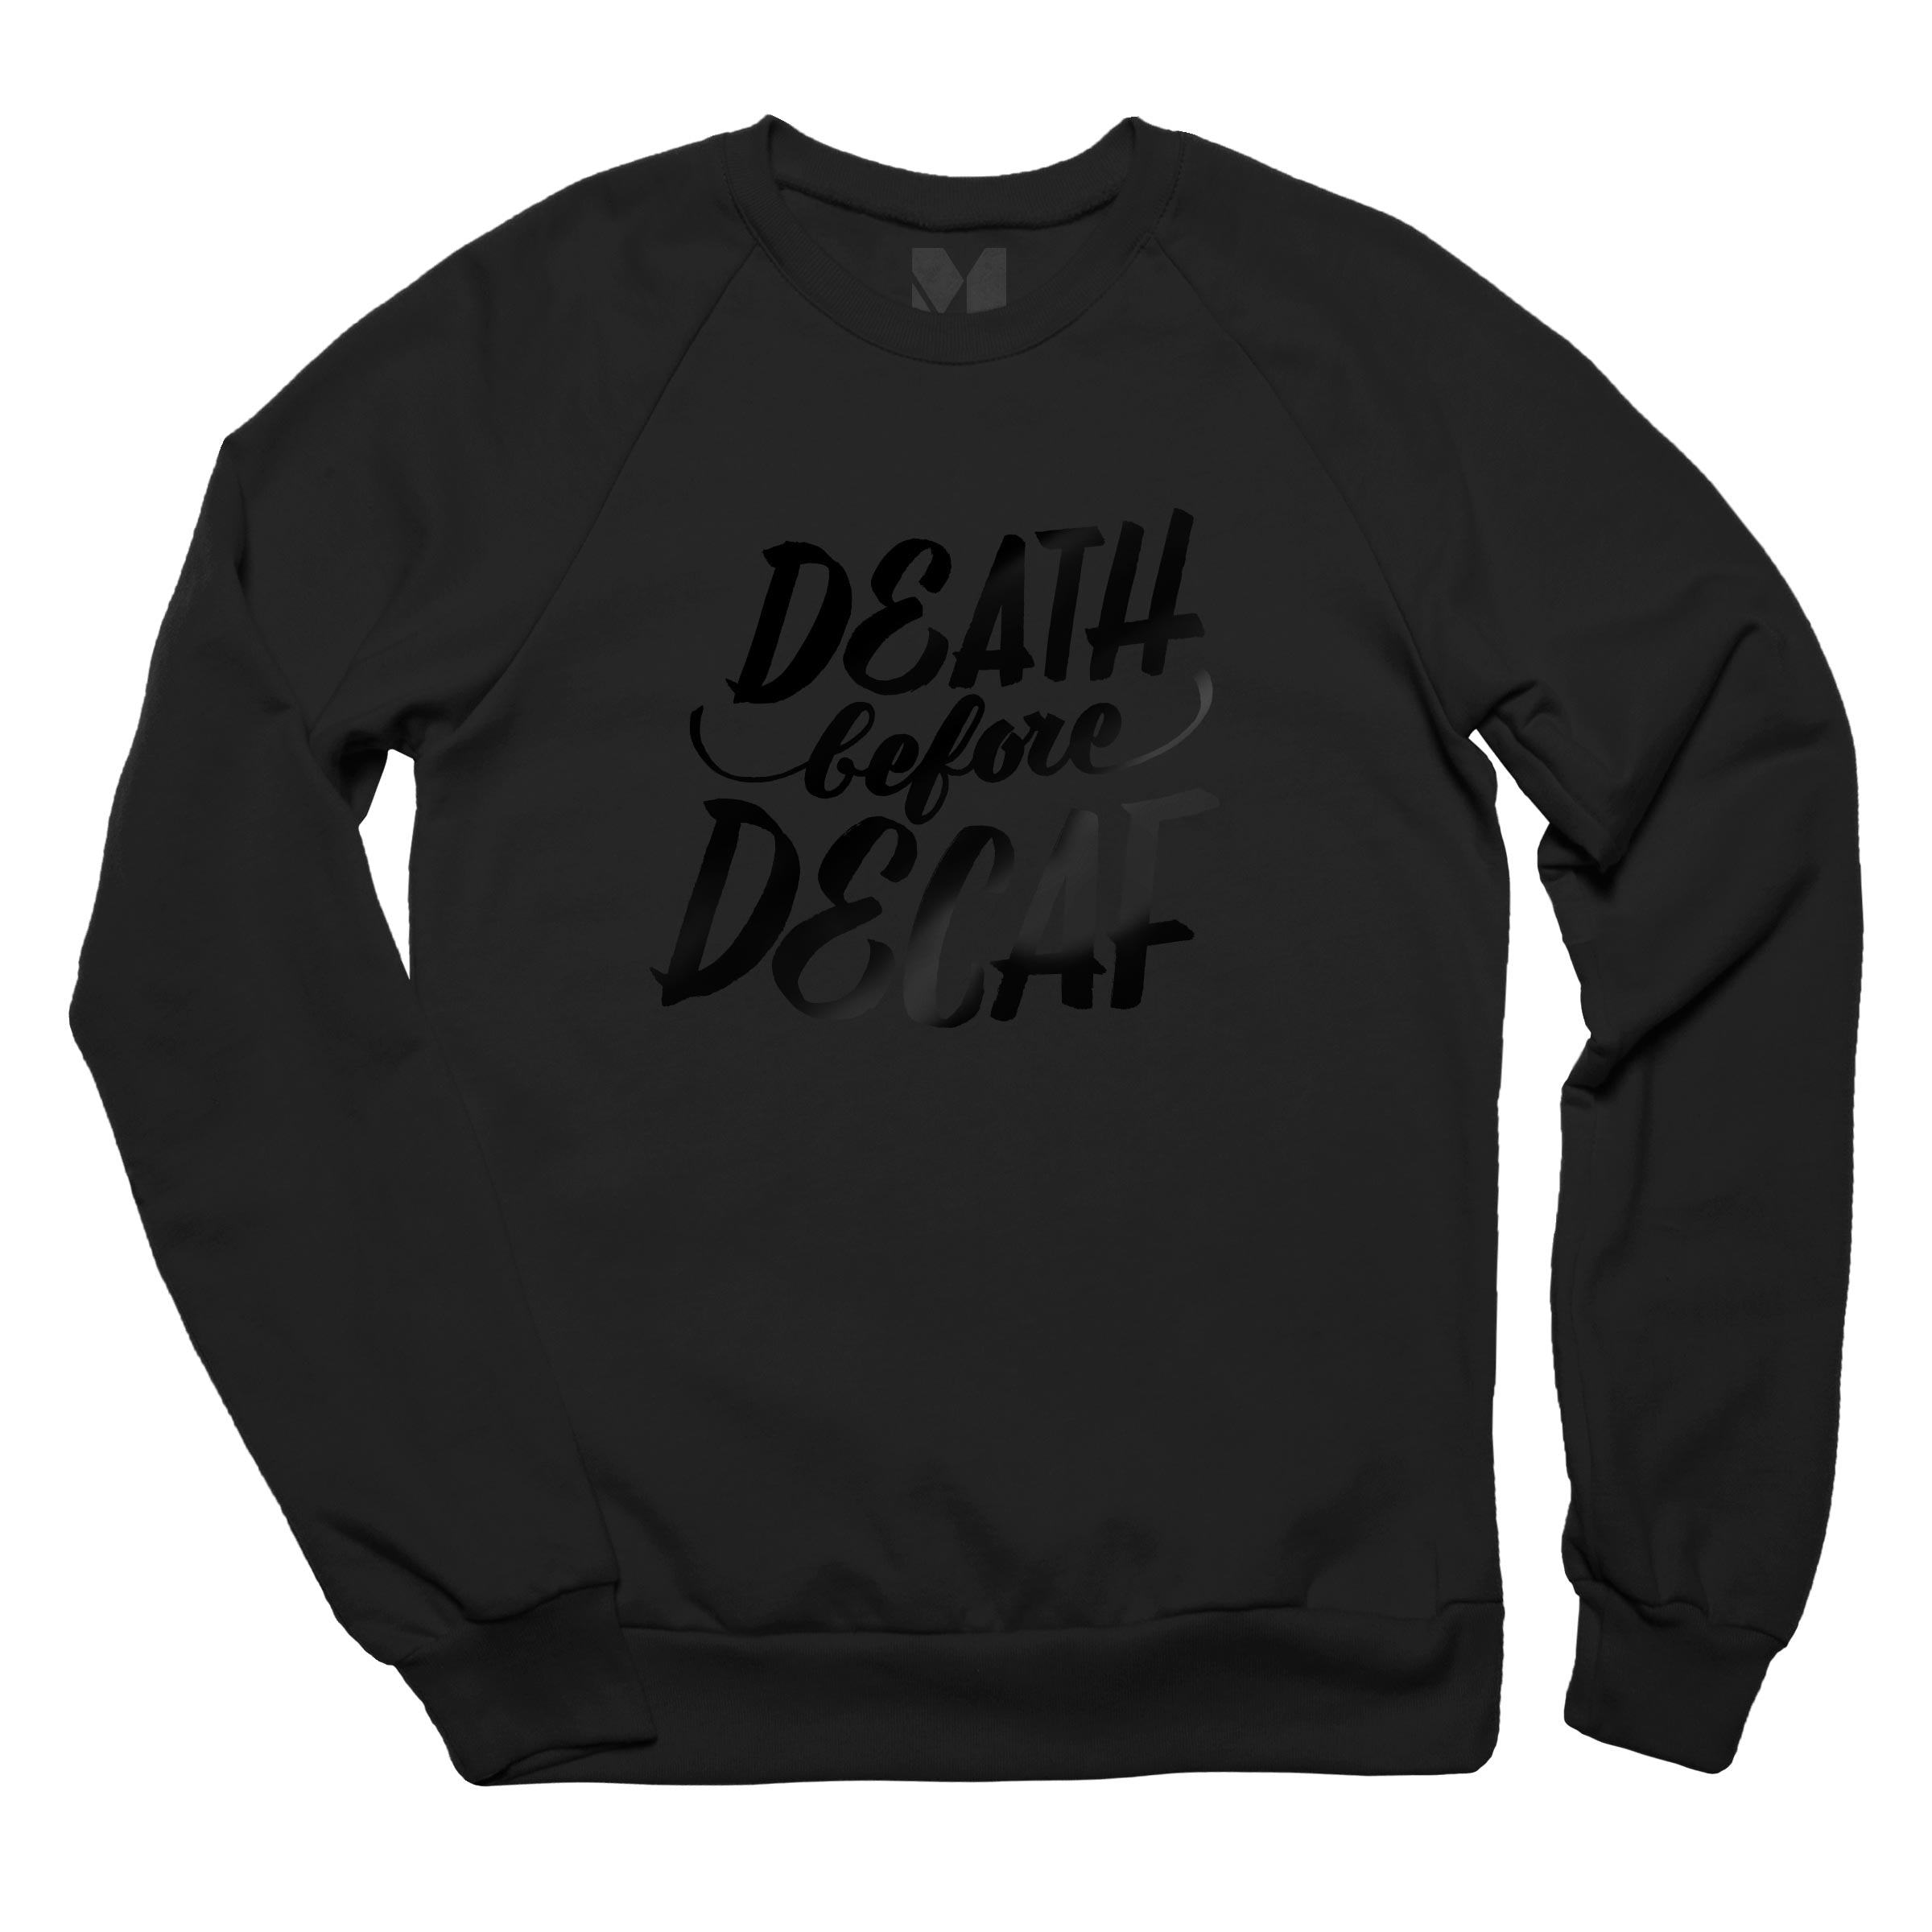 Death Before Decaf - Black Friday Pullover Crewneck